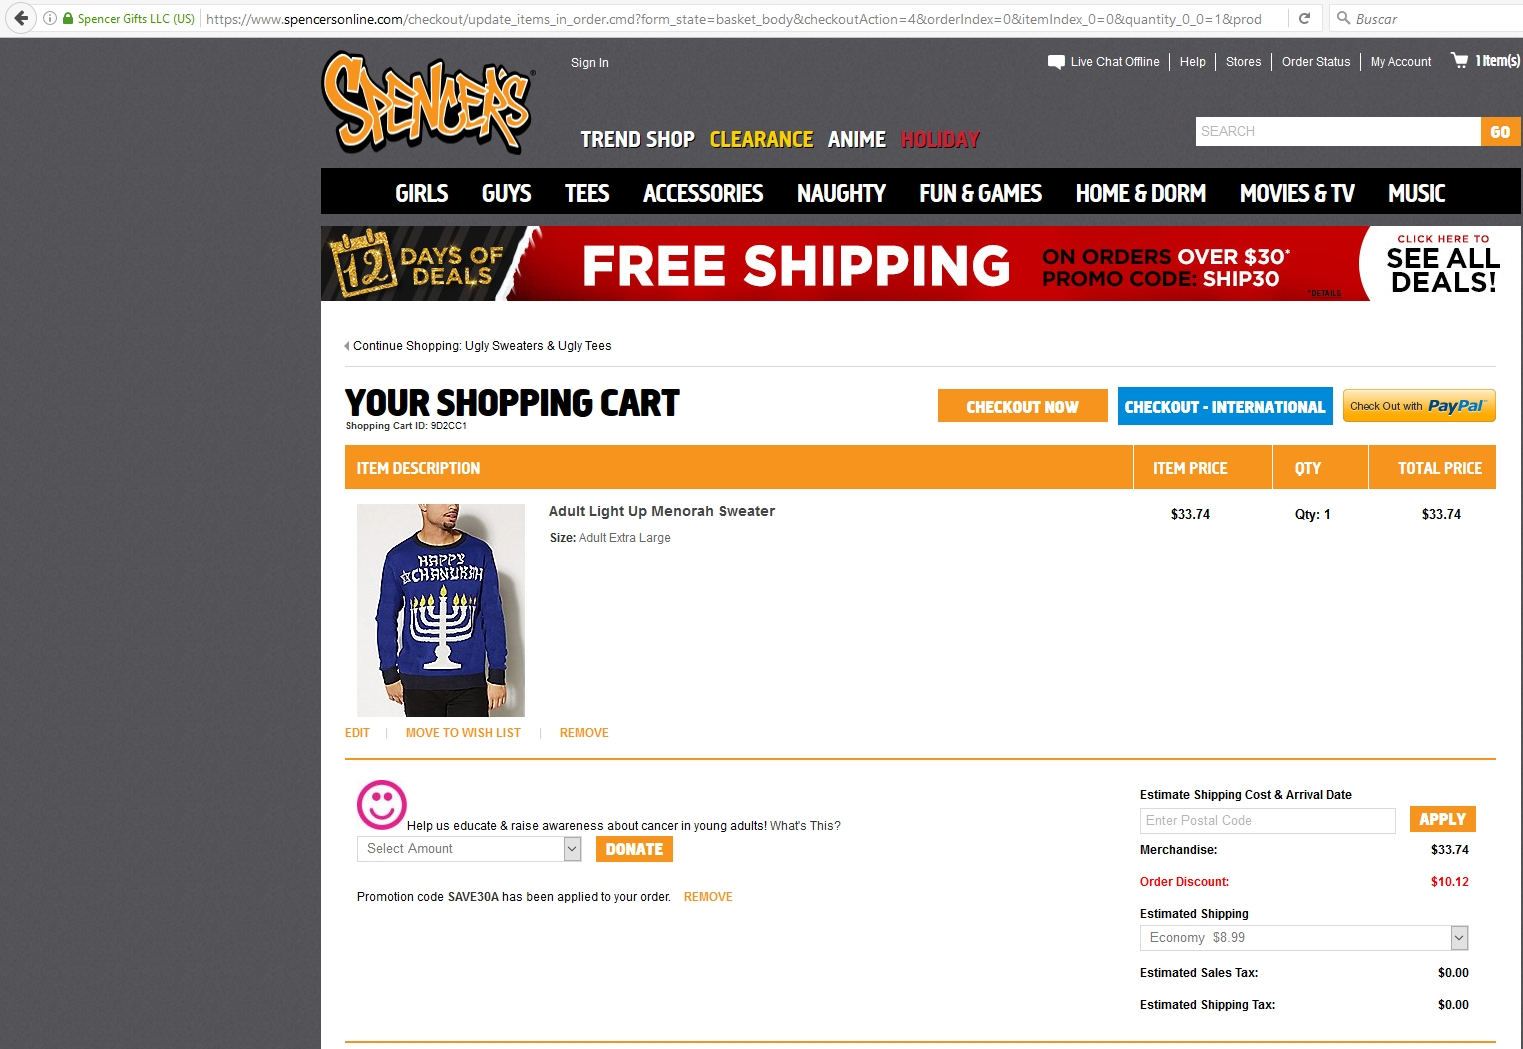 Spencers coupon code